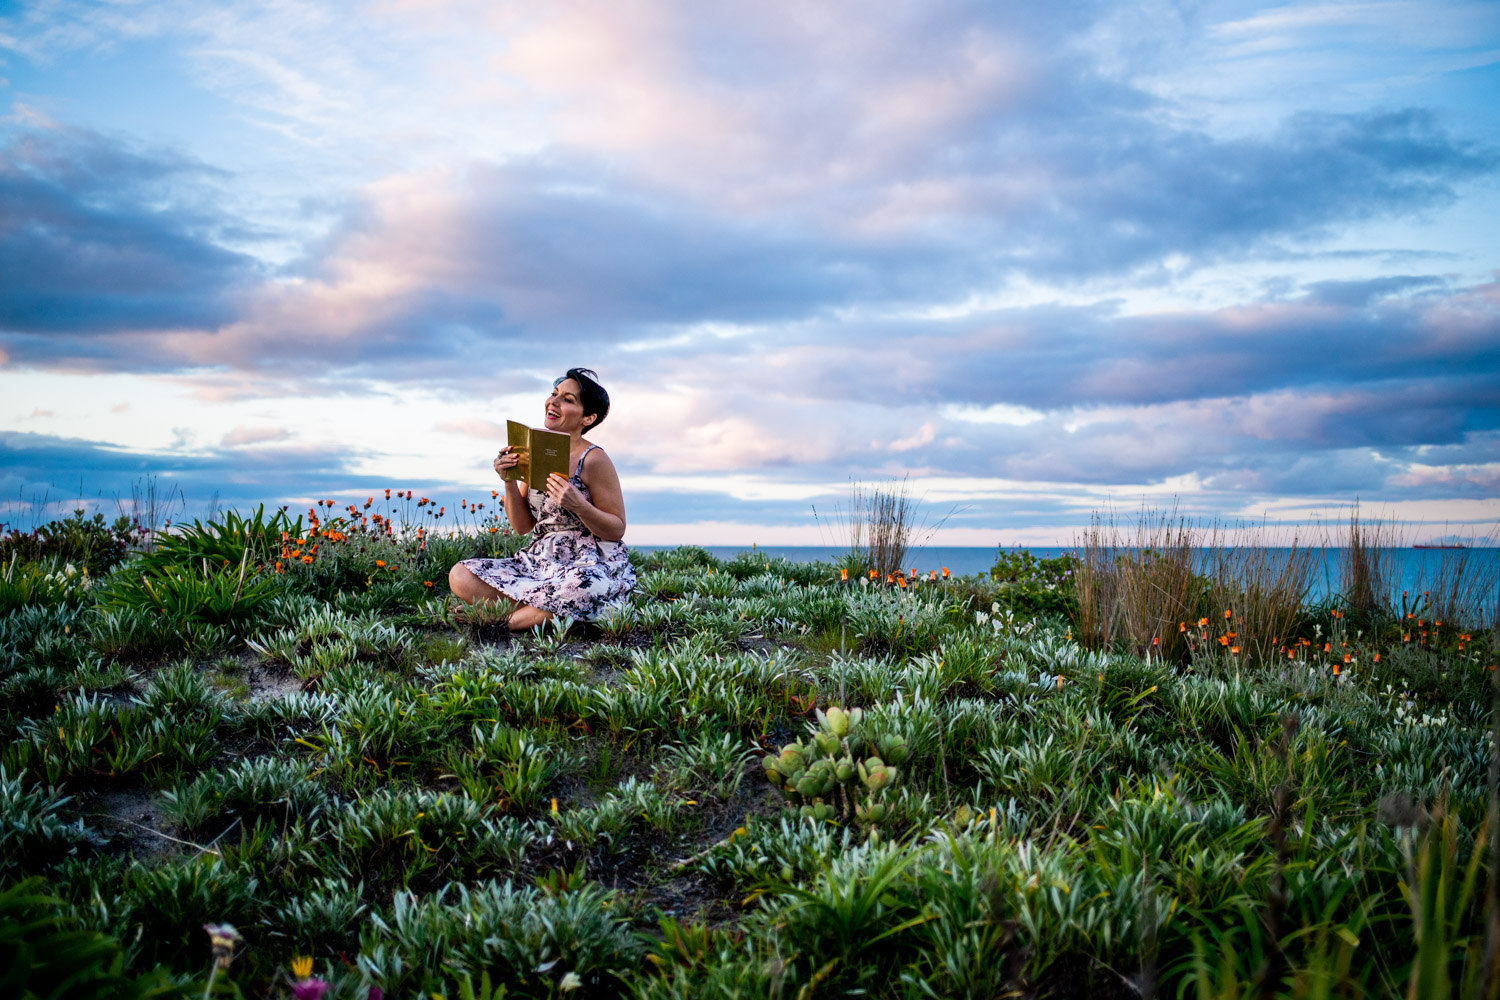 Siren Soul founder Fiona McLeod The Love List Unstick your energy and get into the flow empowerment coaching auckland image credit lolamedia